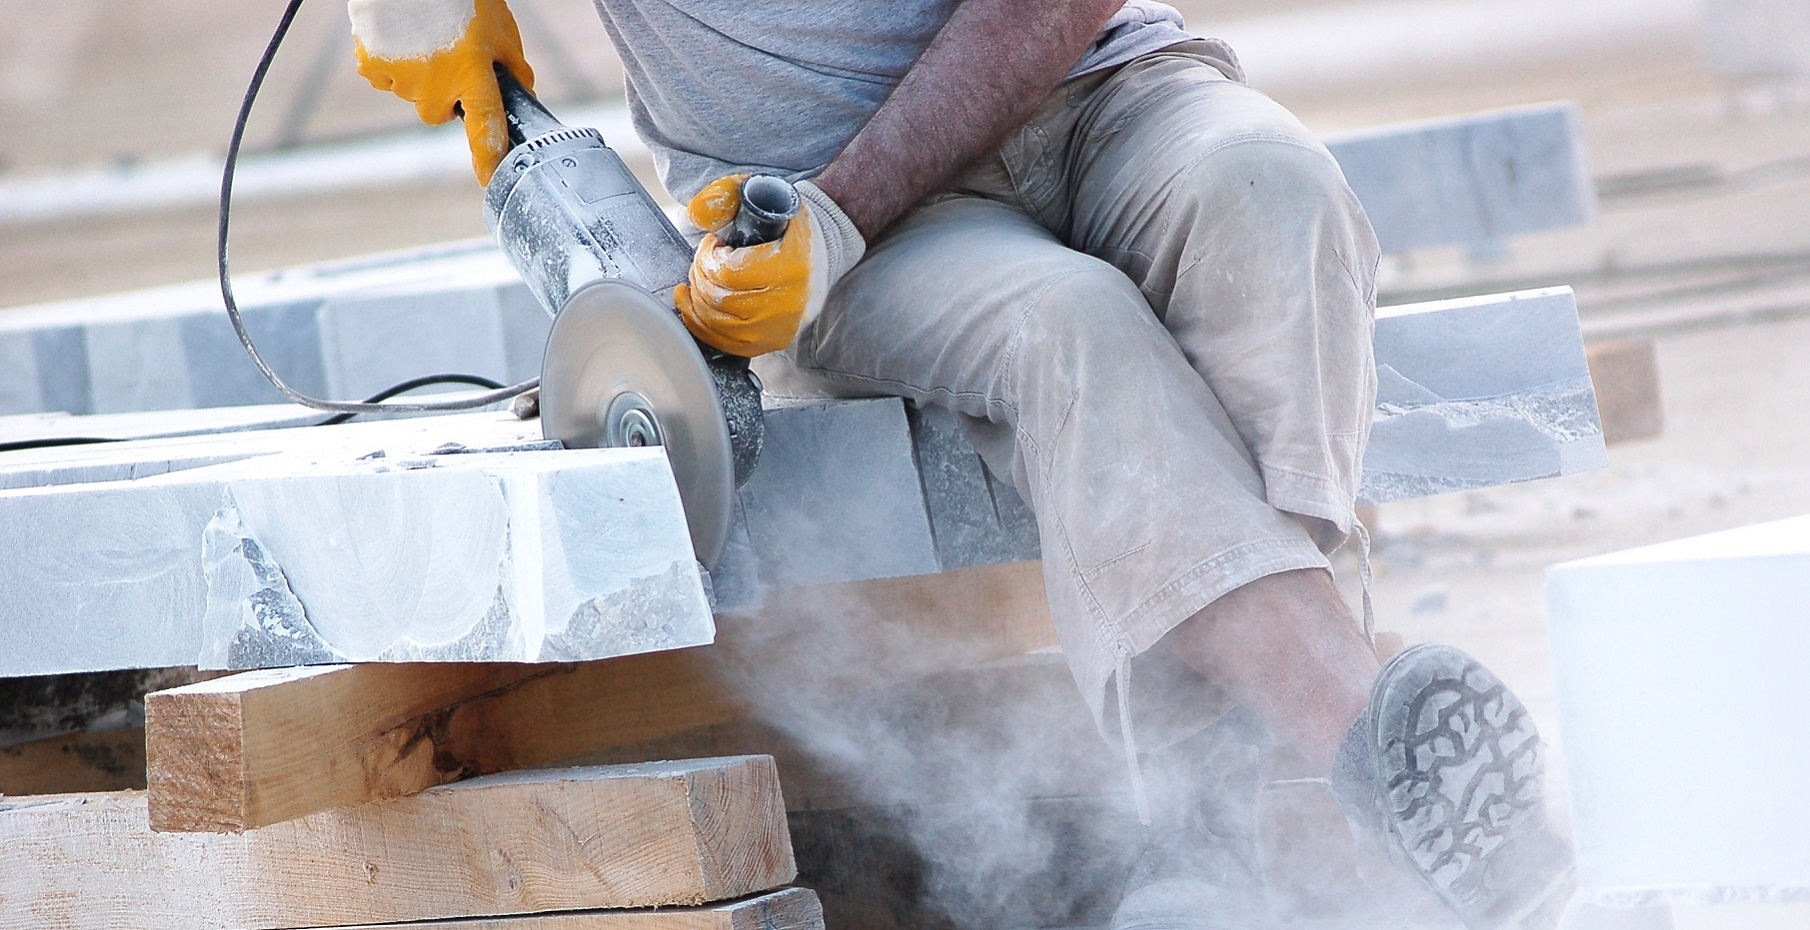 While it takes sustained exposure to silica dust over long periods of time for silicosis to develop, the prevalence of silica in nature creates makes it more common for those who work in construction, mining and other industrial industries. Despite OSHA regulations and the duration one needs to be exposed to silica dust, silicosis is still the cause of death for 250 Americans each year.